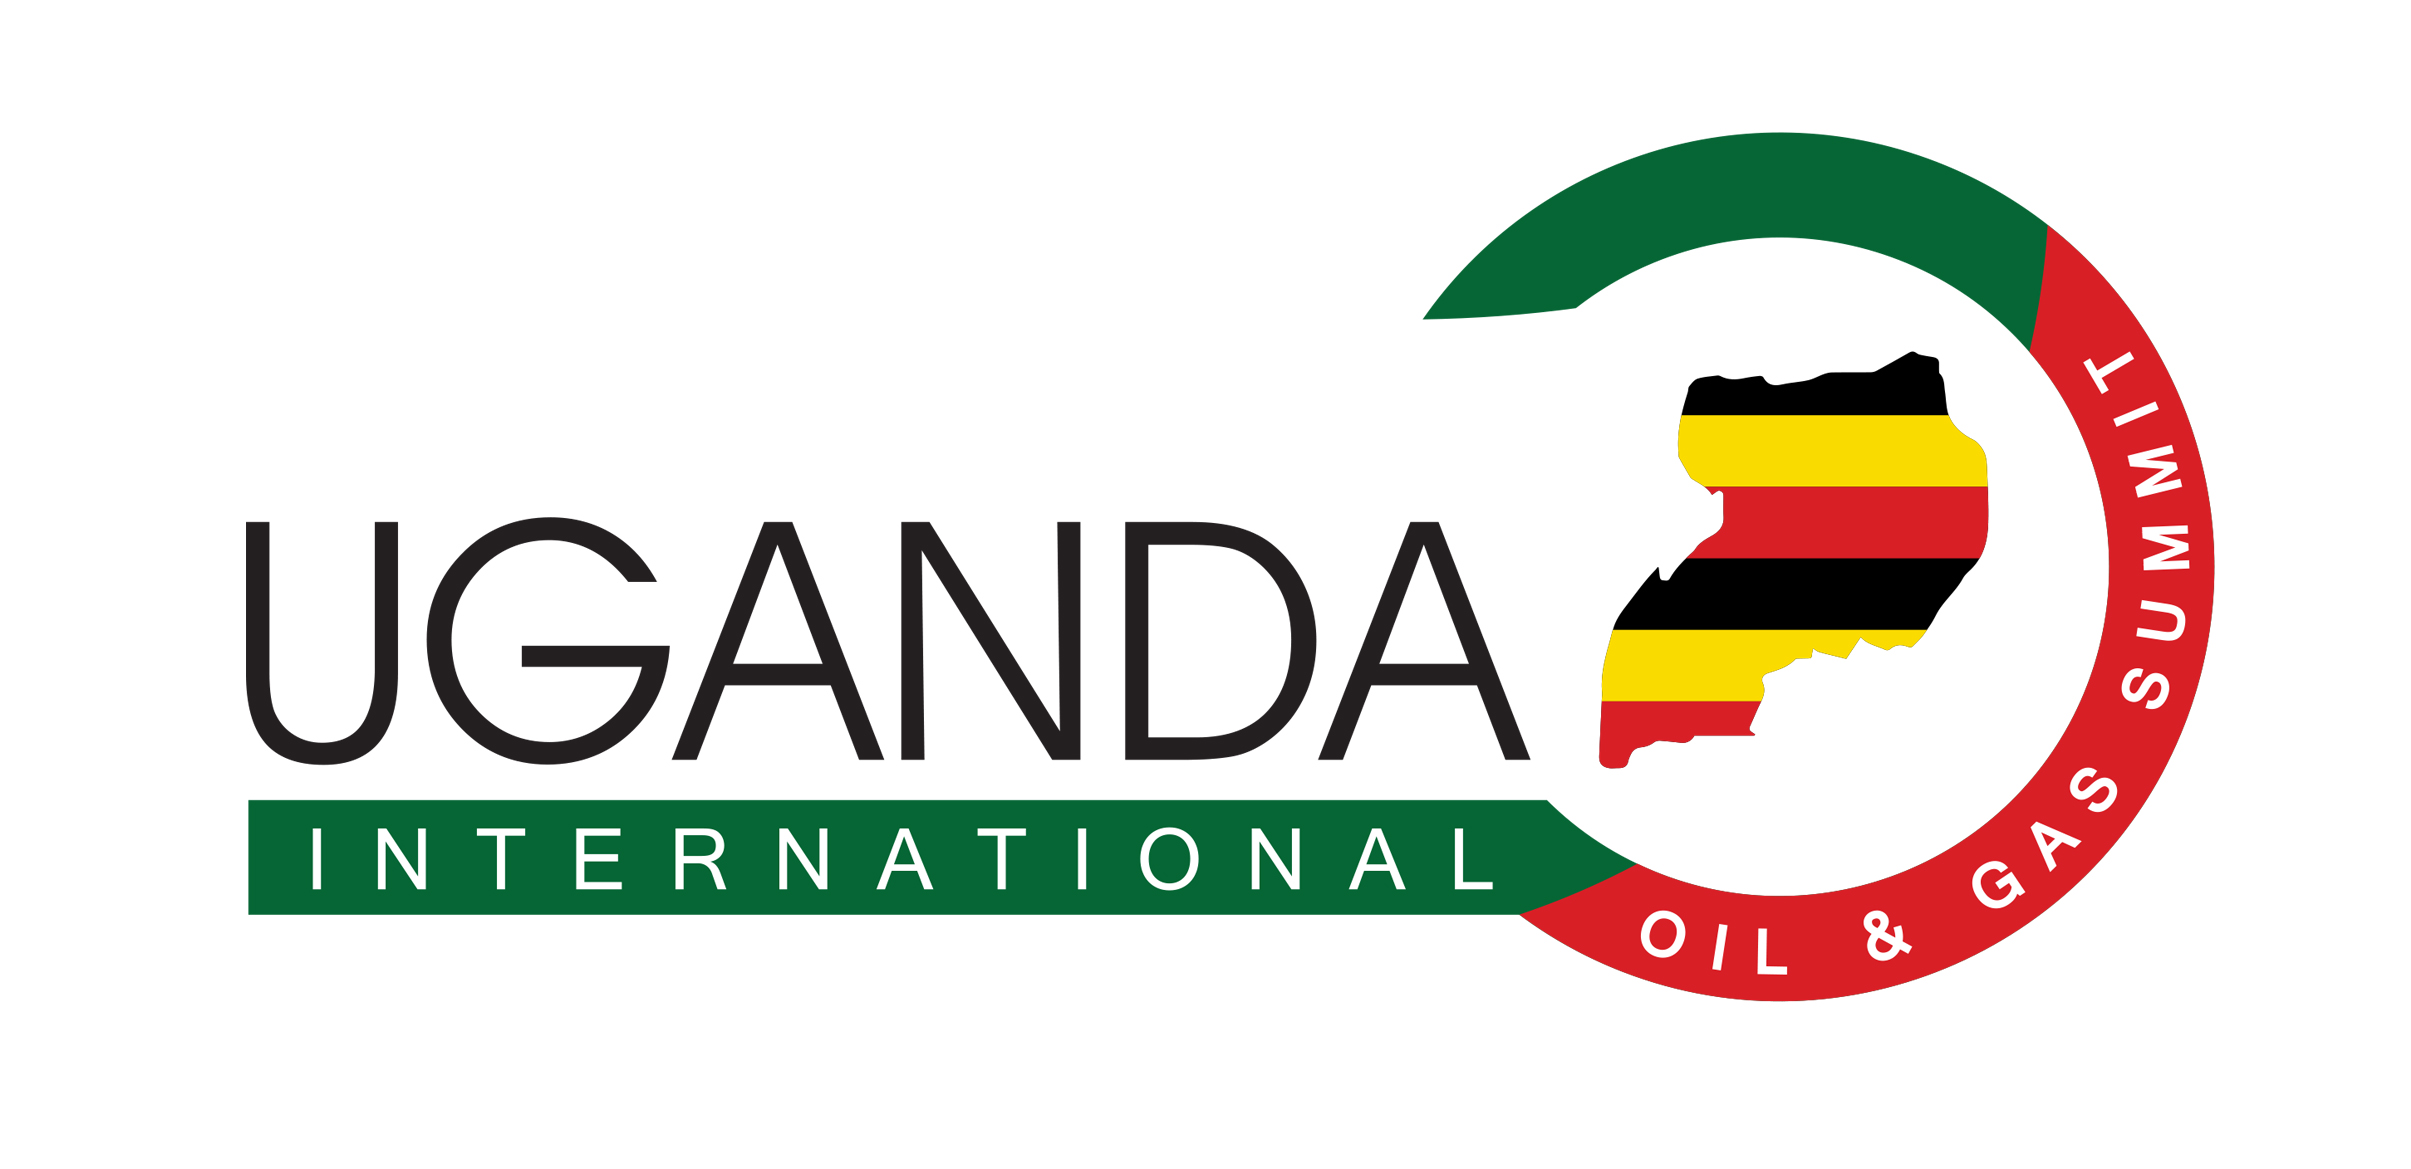 Total and CNOOC Lead as Knowledge Partners and Principal Sponsors at Uganda's International Oil & Gas Summit